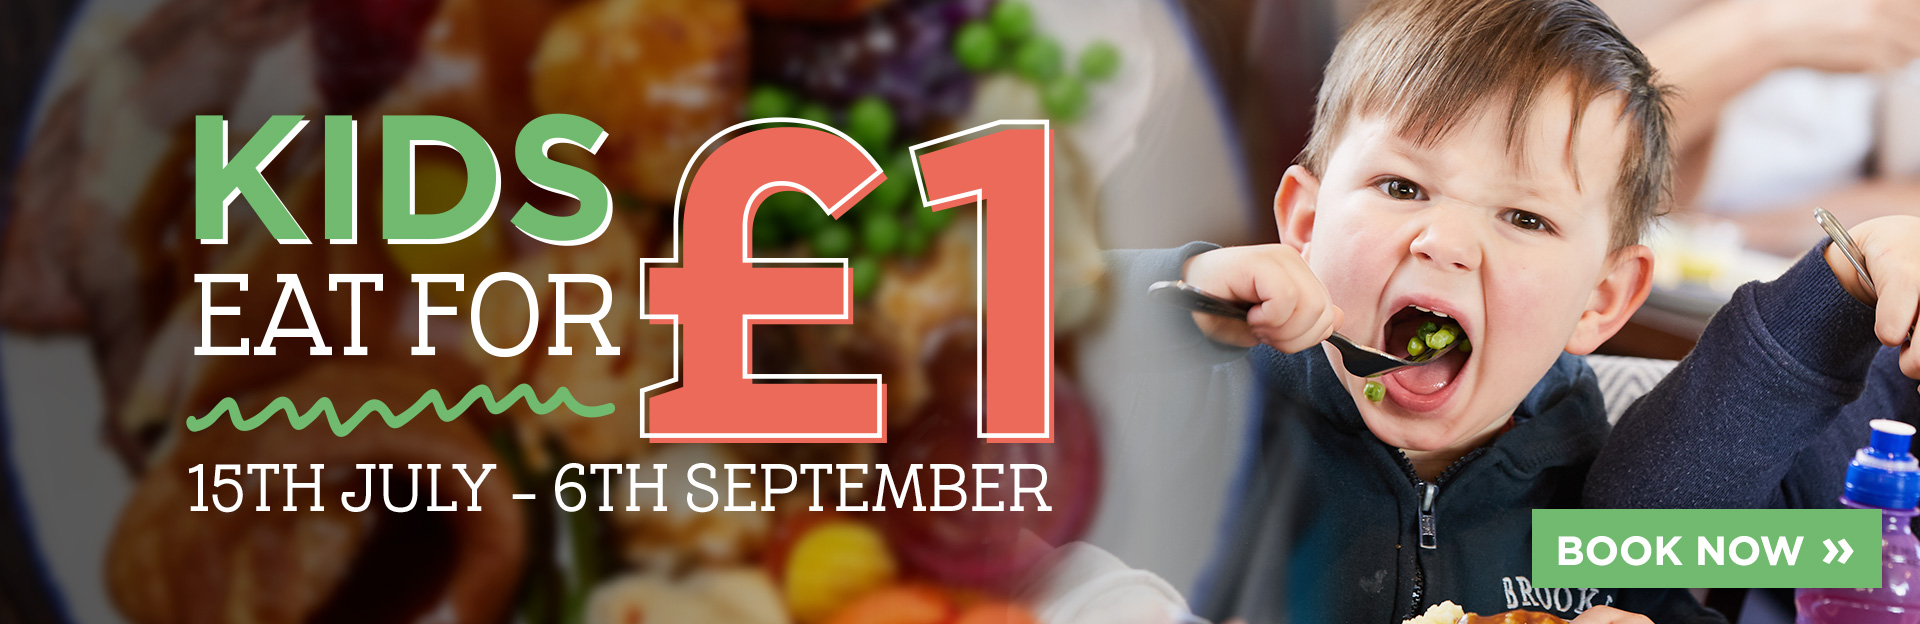 Kids eat for £1 at The Town House